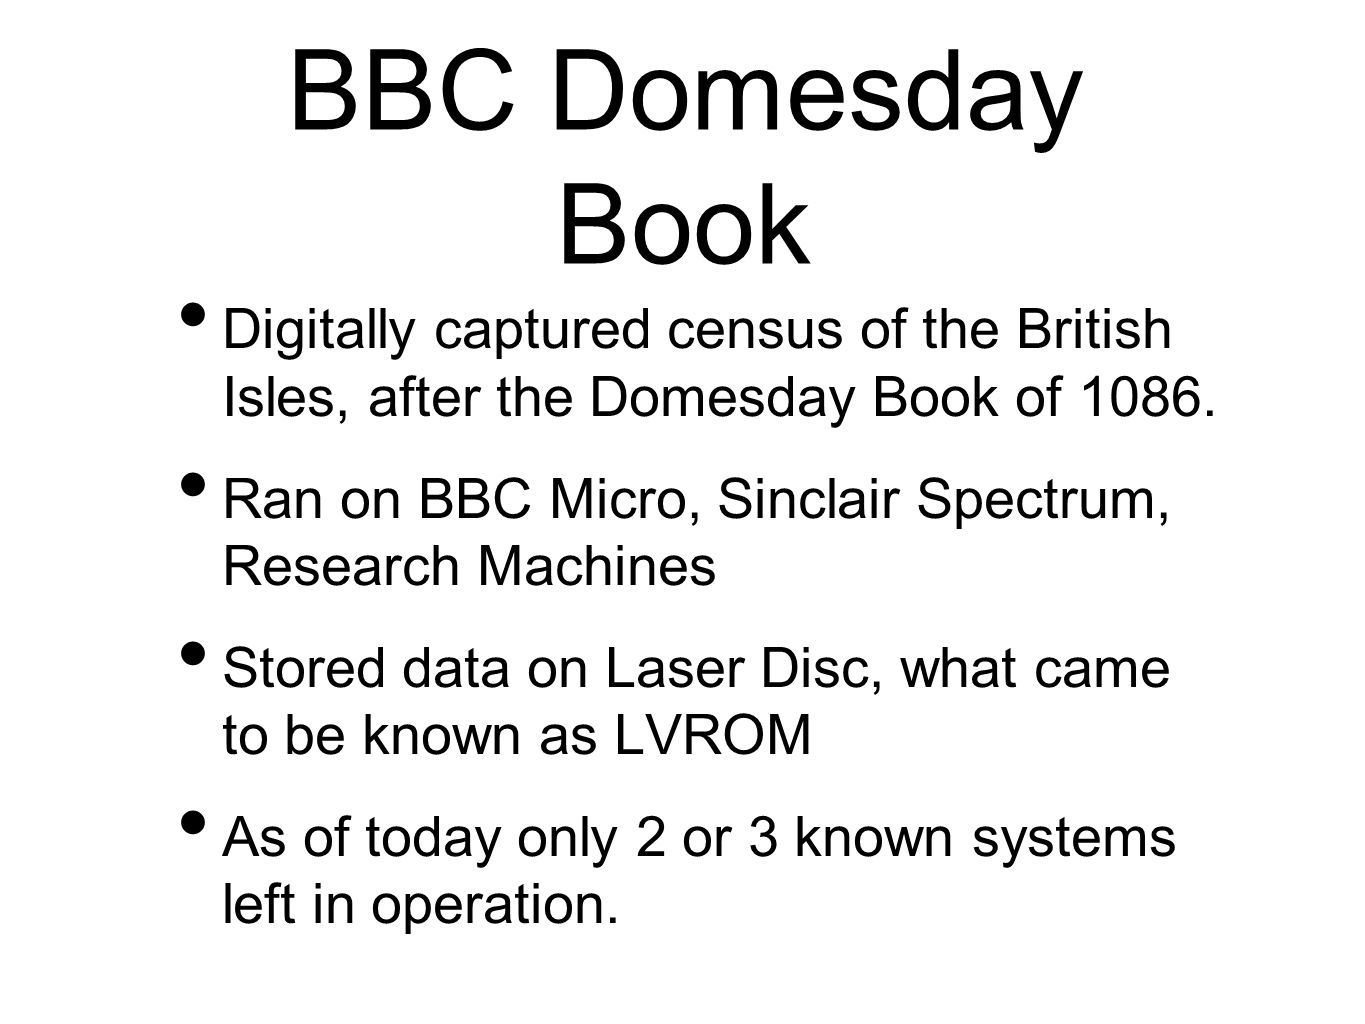 BBC Domesday Book Digitally captured census of the British Isles, after the Domesday Book of 1086.